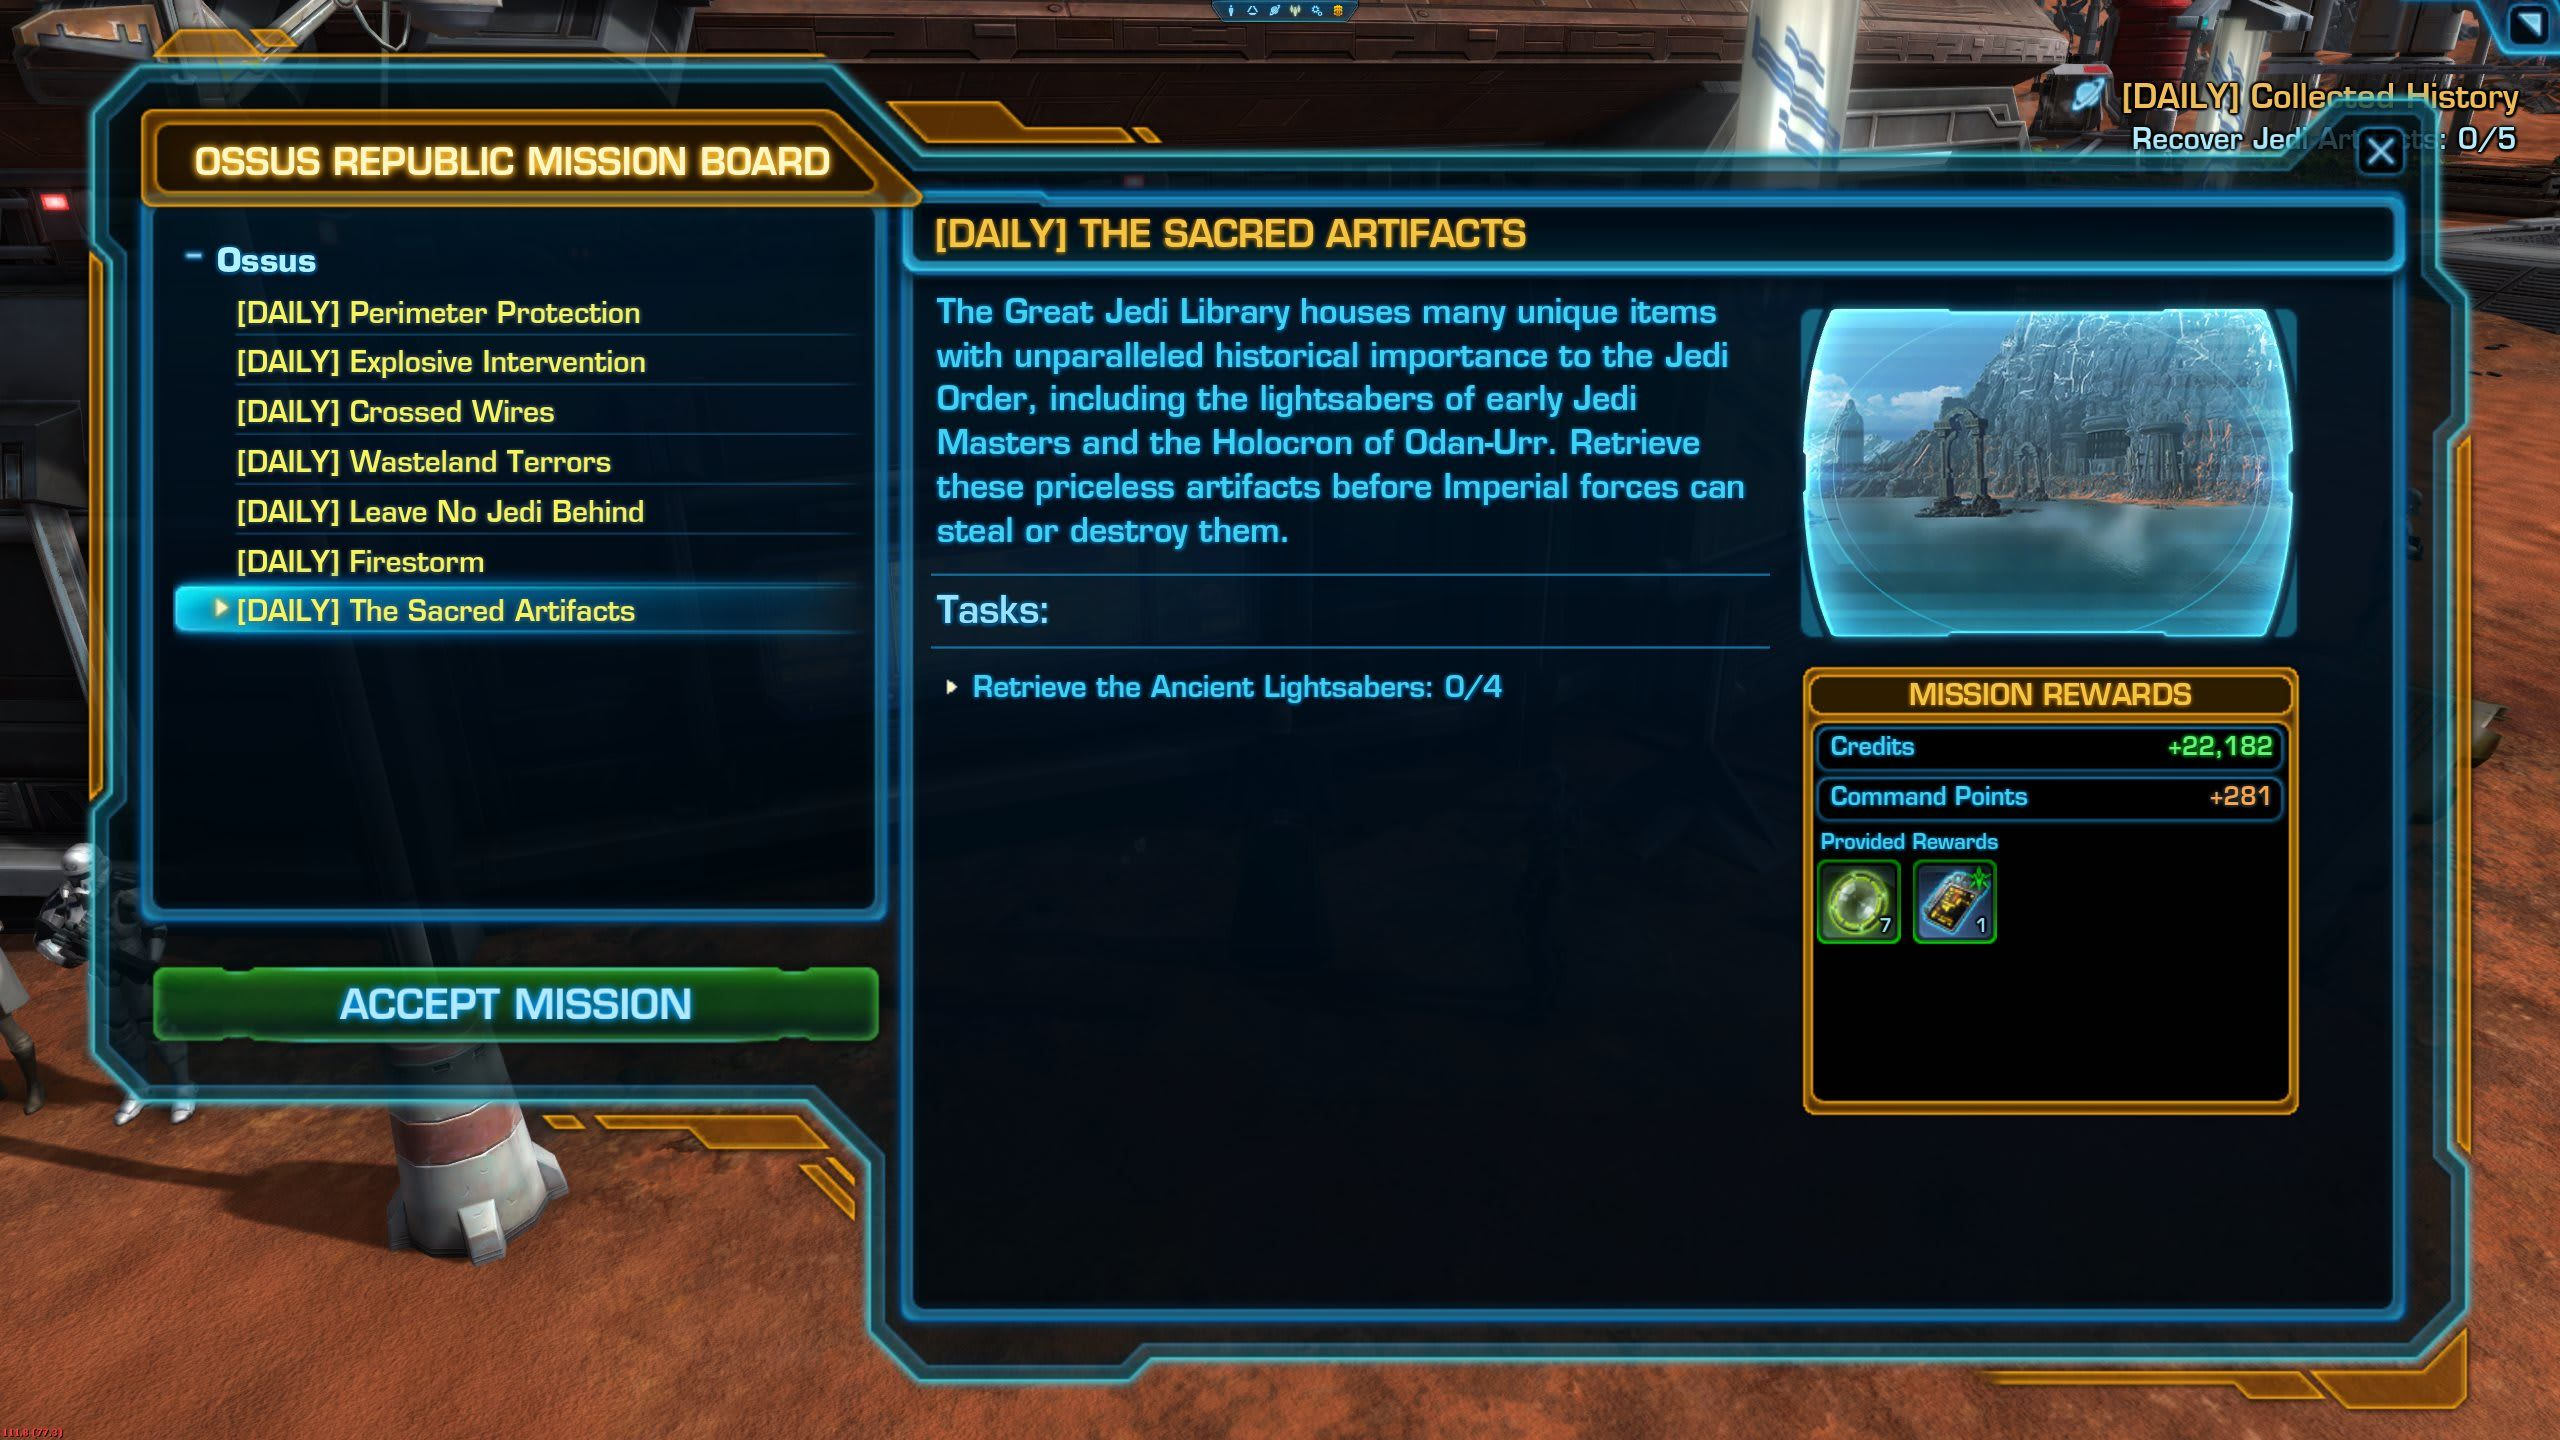 Swtor Ossus Daily Missions And World Bosses Guide Missions The Old Republic Guide